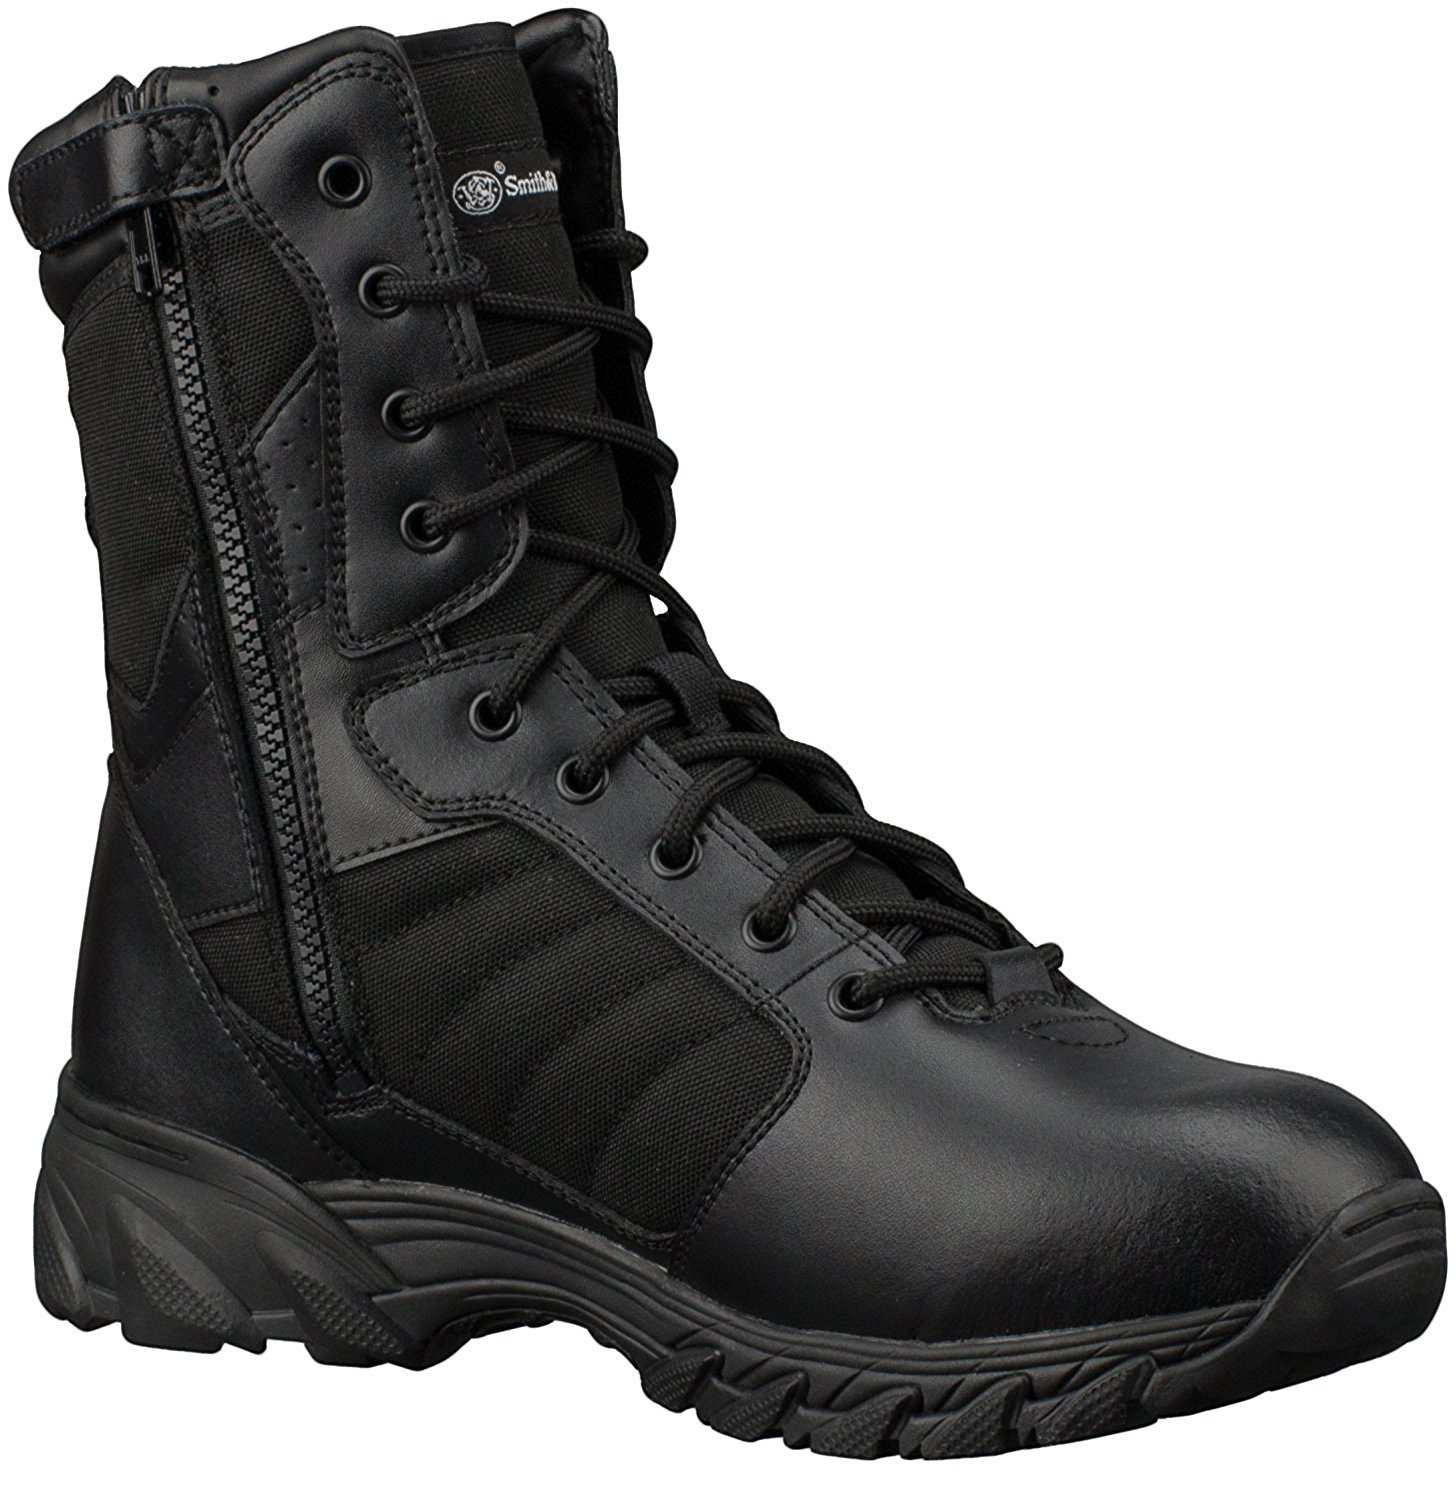 Smith & Wesson Footwear Men's Breach 2.0 Tactical Size Zip Boots, Black, 12